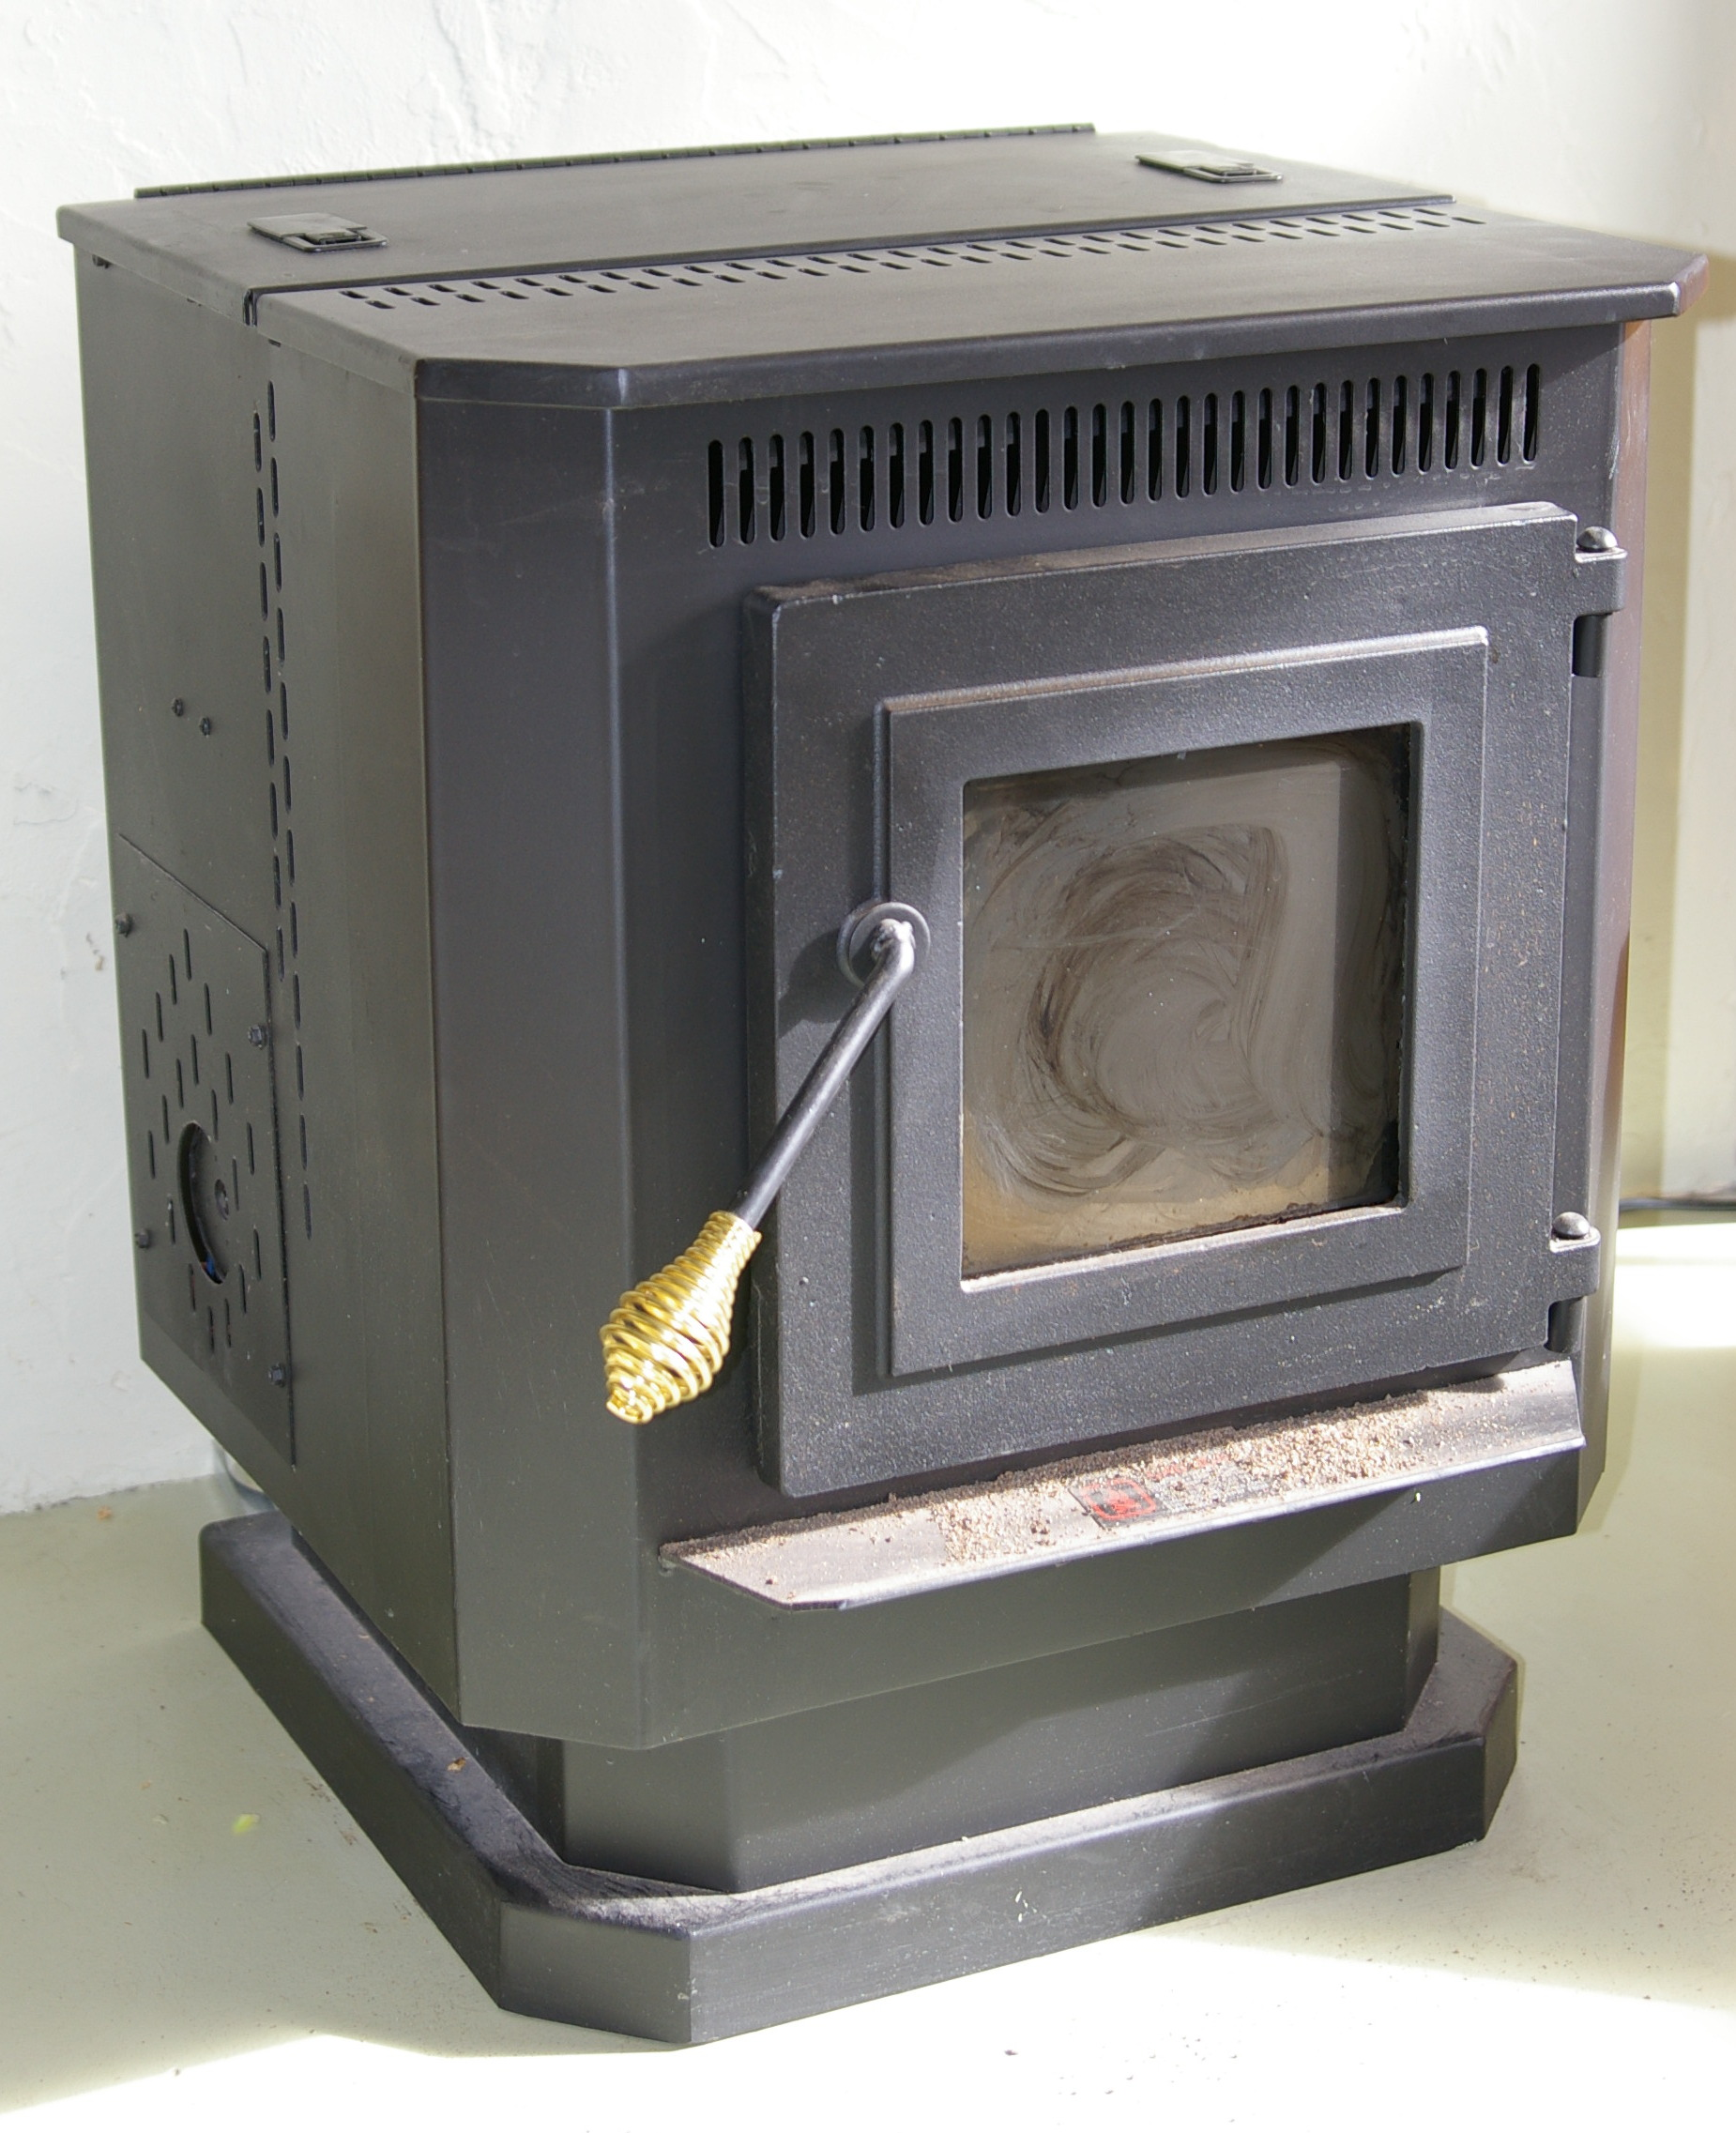 Classic - Thelin Hearth Products - Hand Crafted Pellet and Gas Stoves